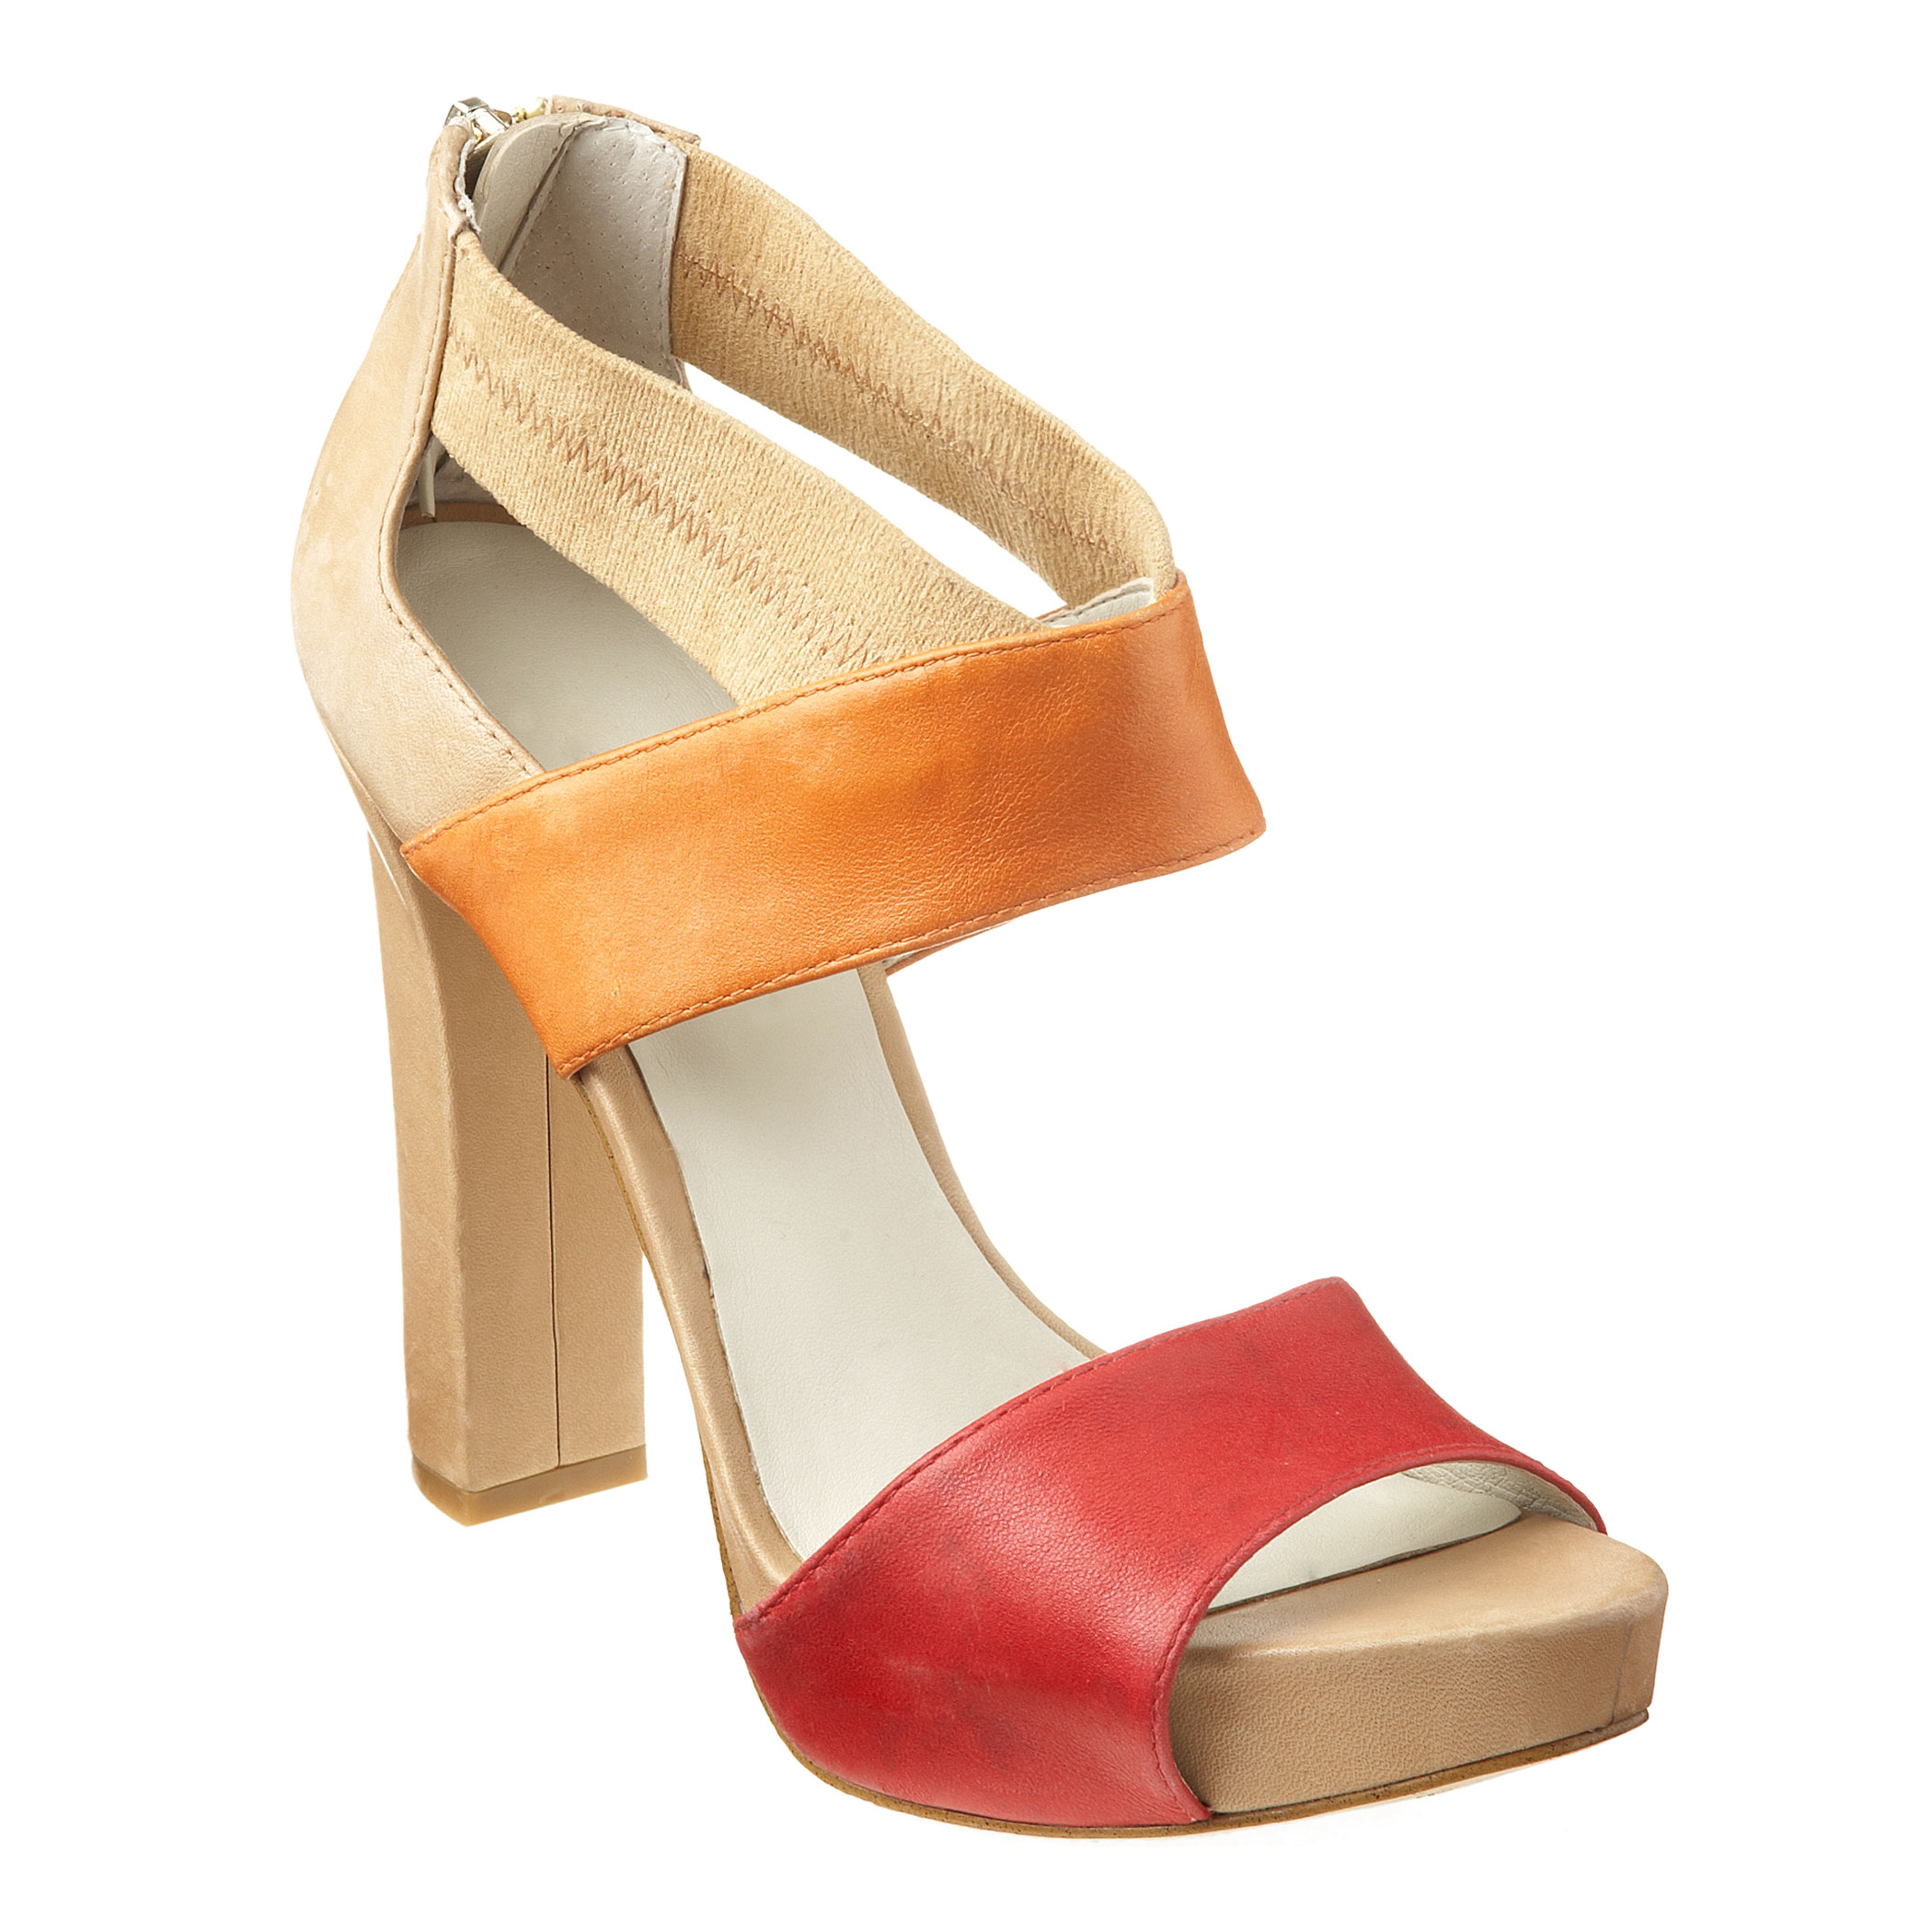 Nine West is a retail company and fashion wholesaler that offers products for women such as shoes, handbags, eyewear and scarves. The company was acquired by Jones Apparel Group in Customers are pleased with the trendy products the company has to offer.